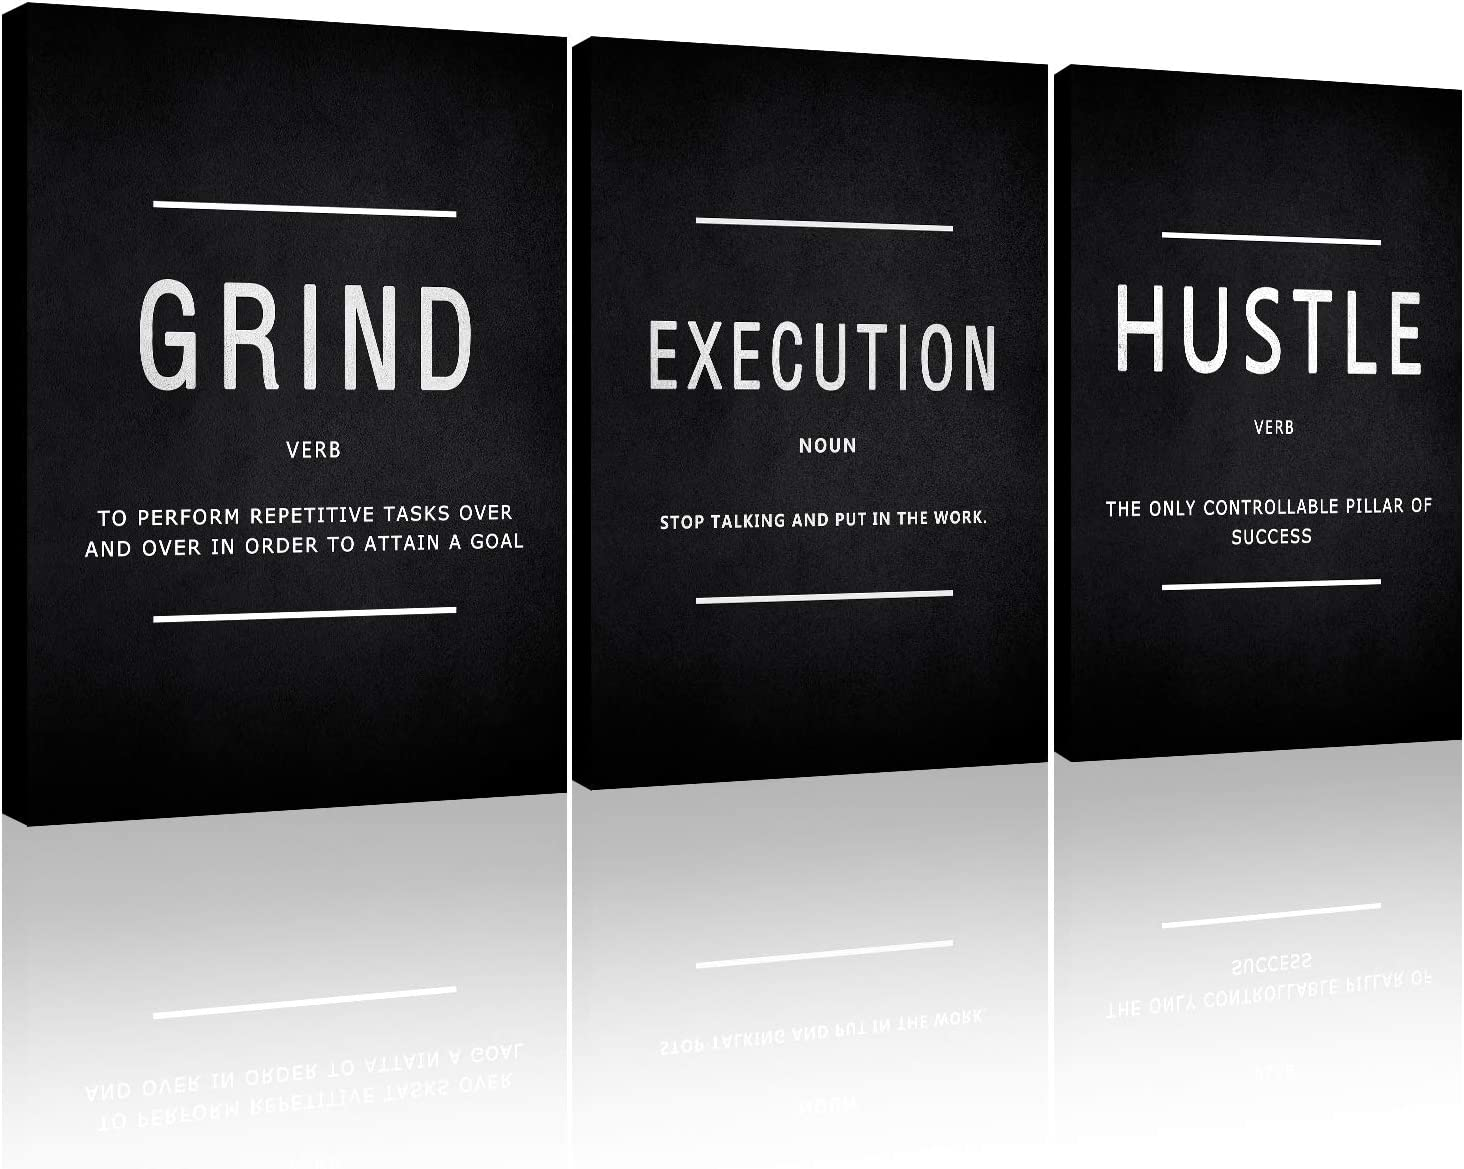 Generies Canvas Painting Wall Art, Grind Hustle Execution Motivational Wall Art Decoration Posters Prints for Living Room Bedroom, Office Decor, Gallery-Wrapped Canvas Art Set Framed 3PCS